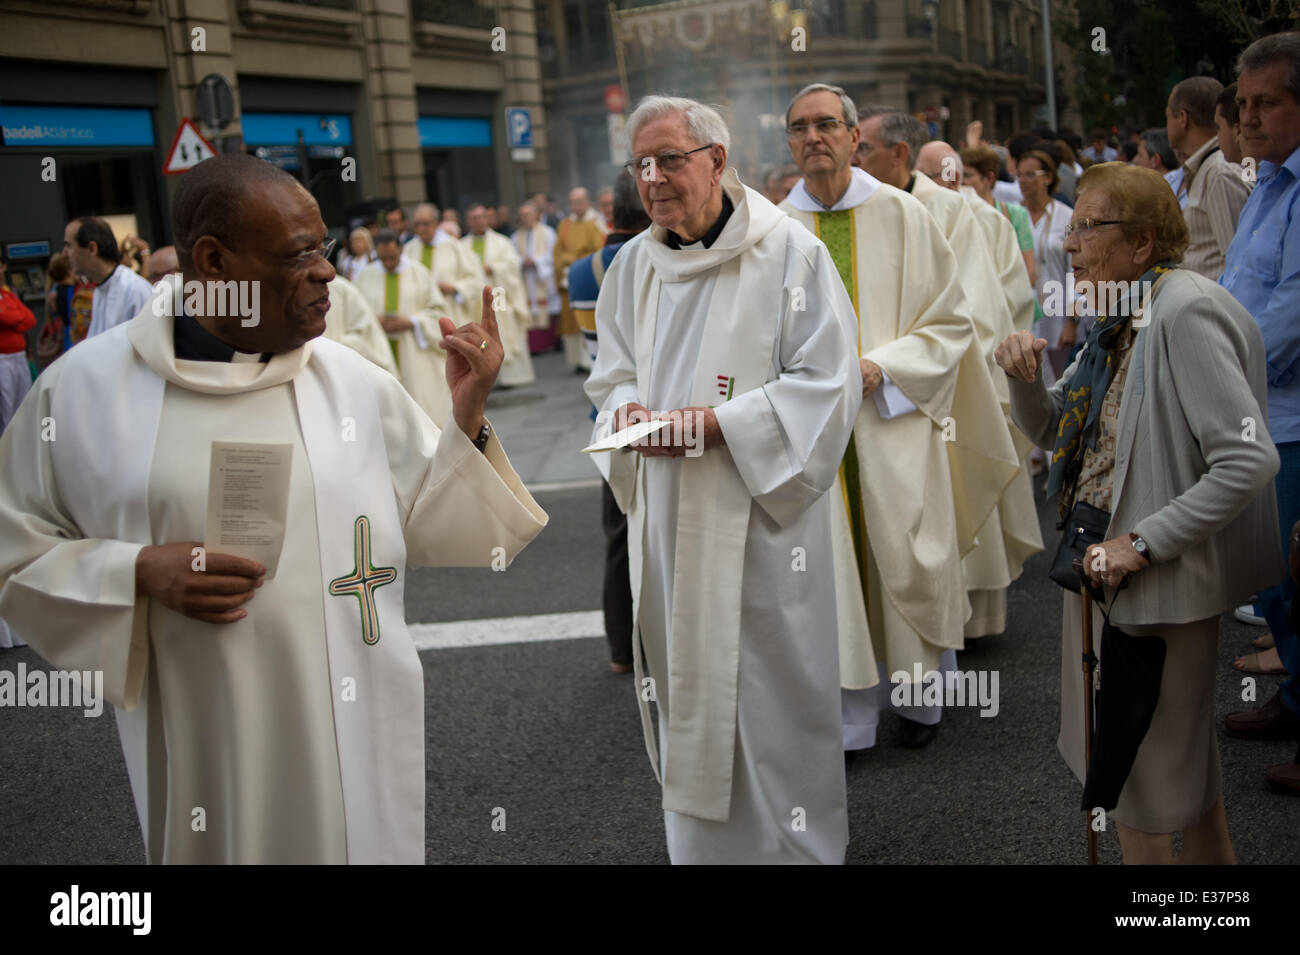 Barcelona, Spain. 22nd June, 2014. Barcelona, Spain.A priest talks to a woman during a religious procession in the - Stock Image